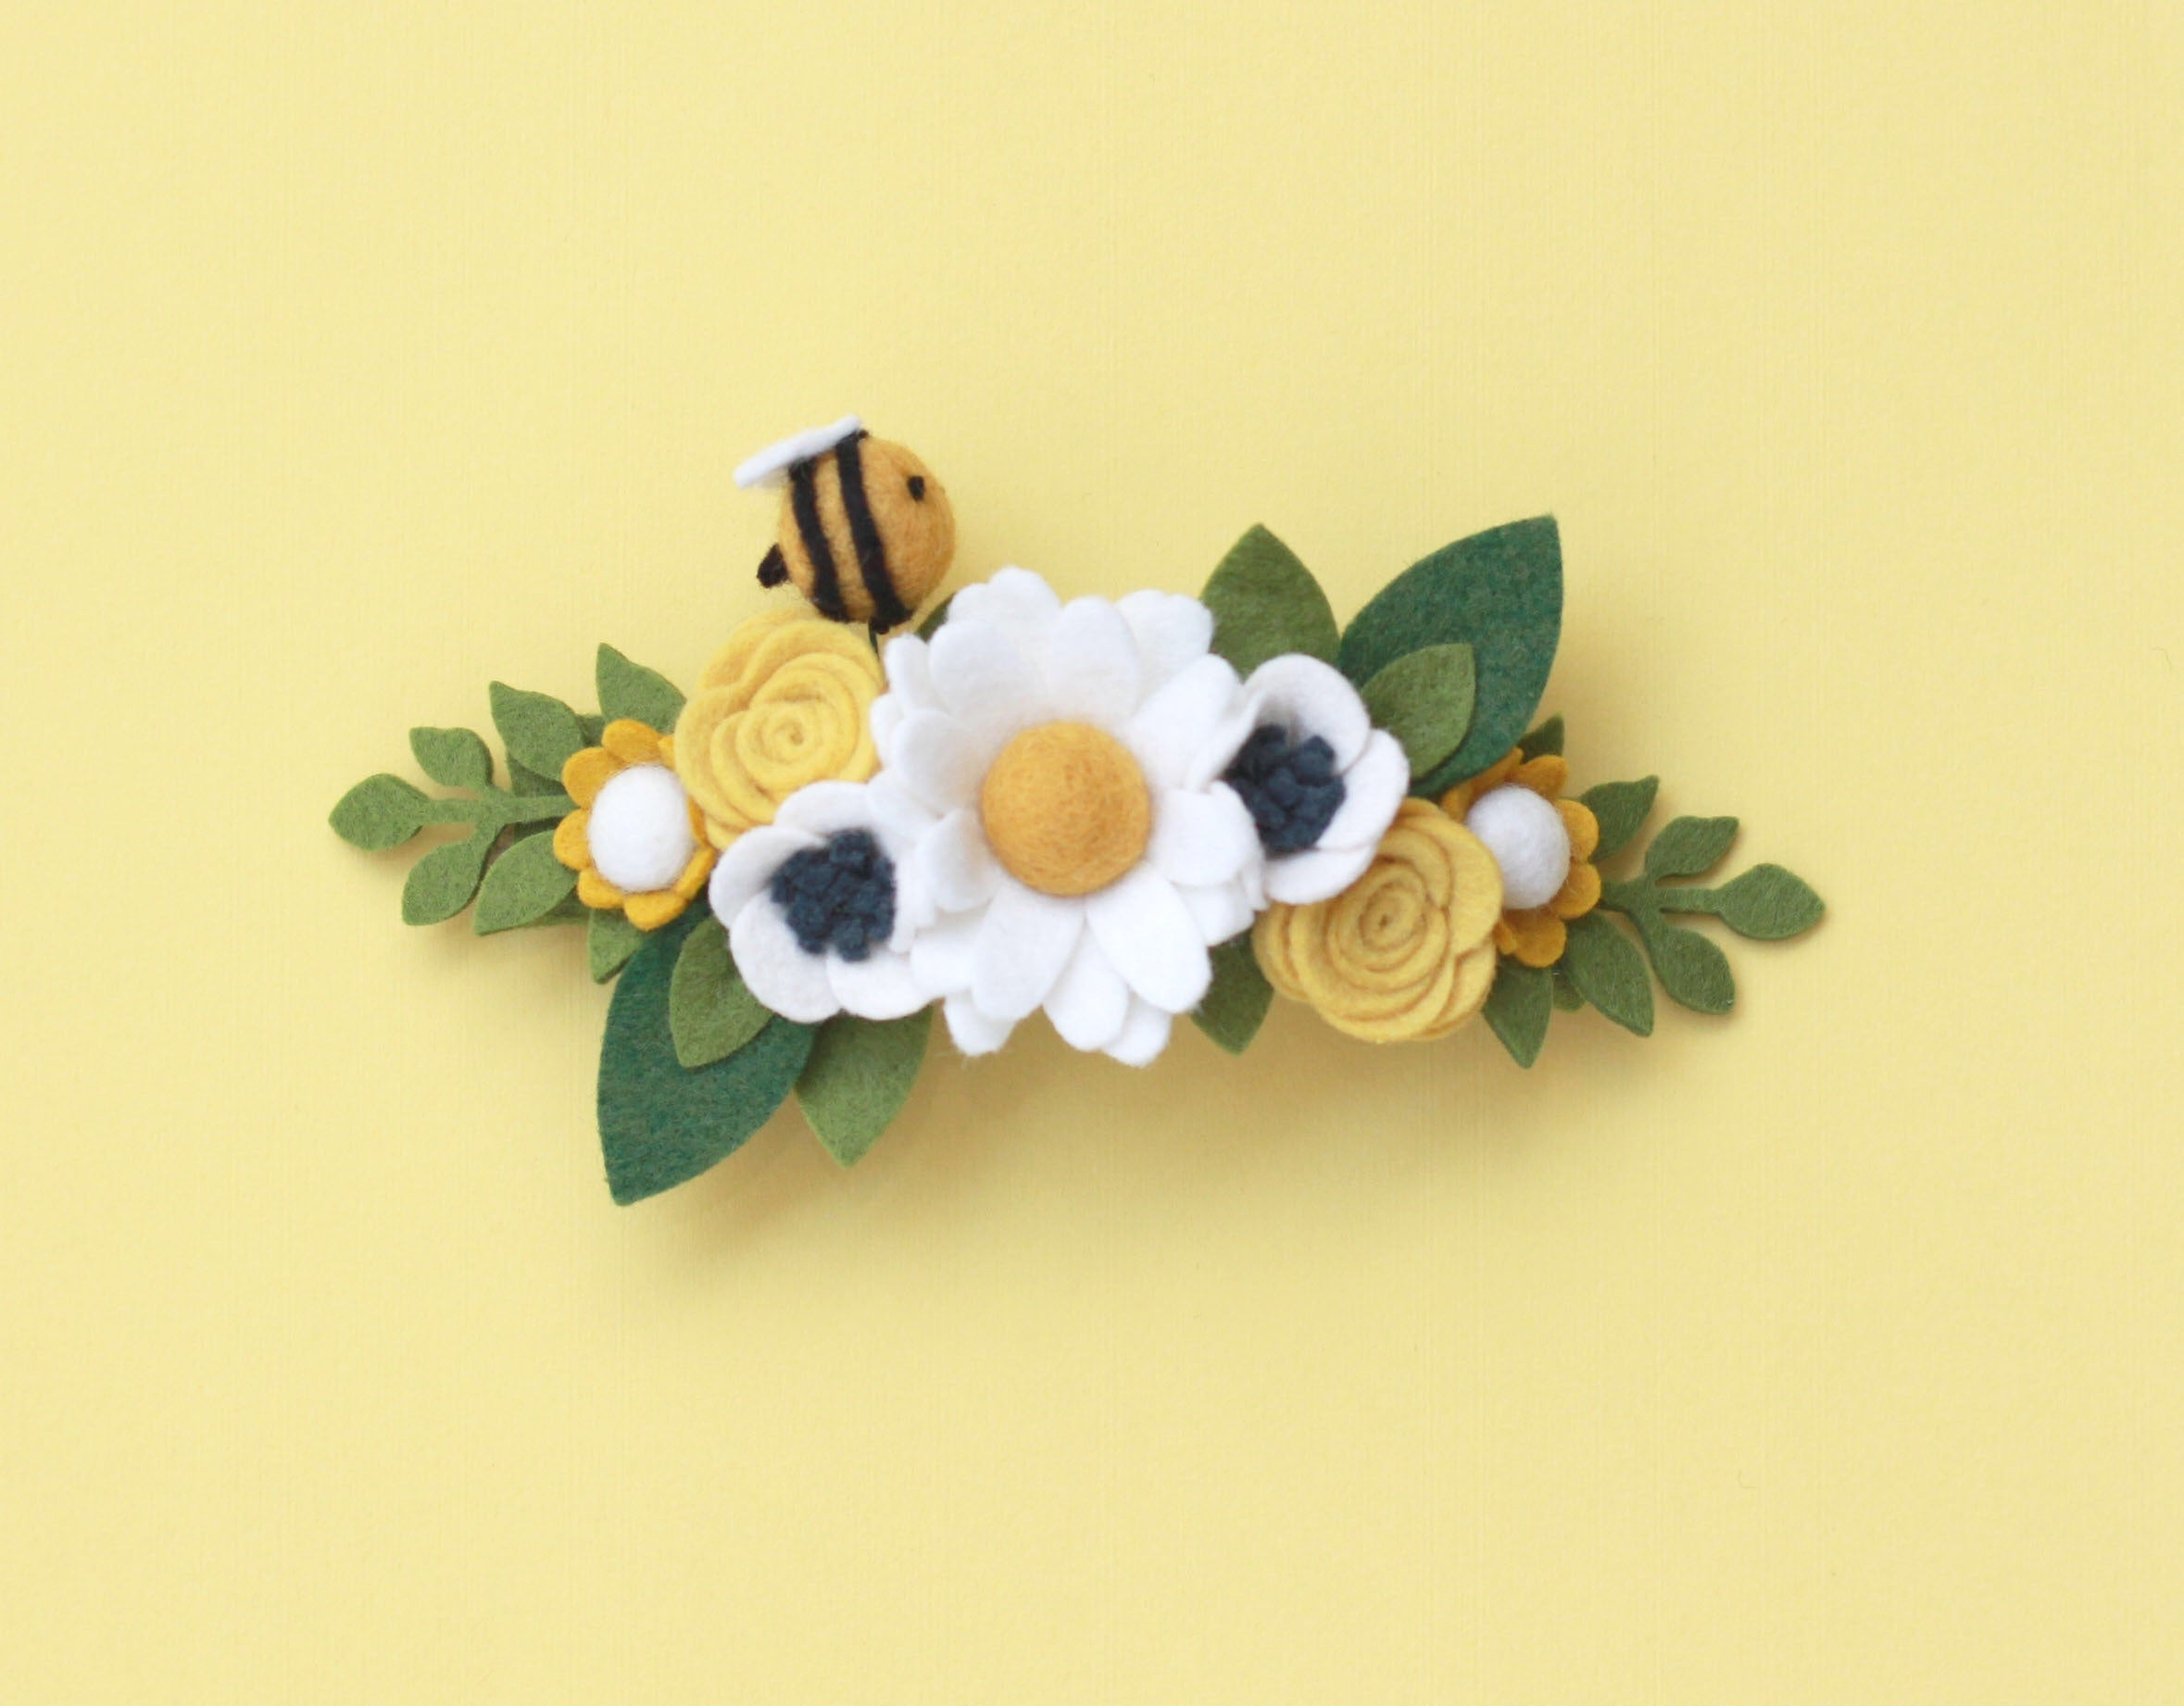 Honeybee felt flower crown by Posy and Pom